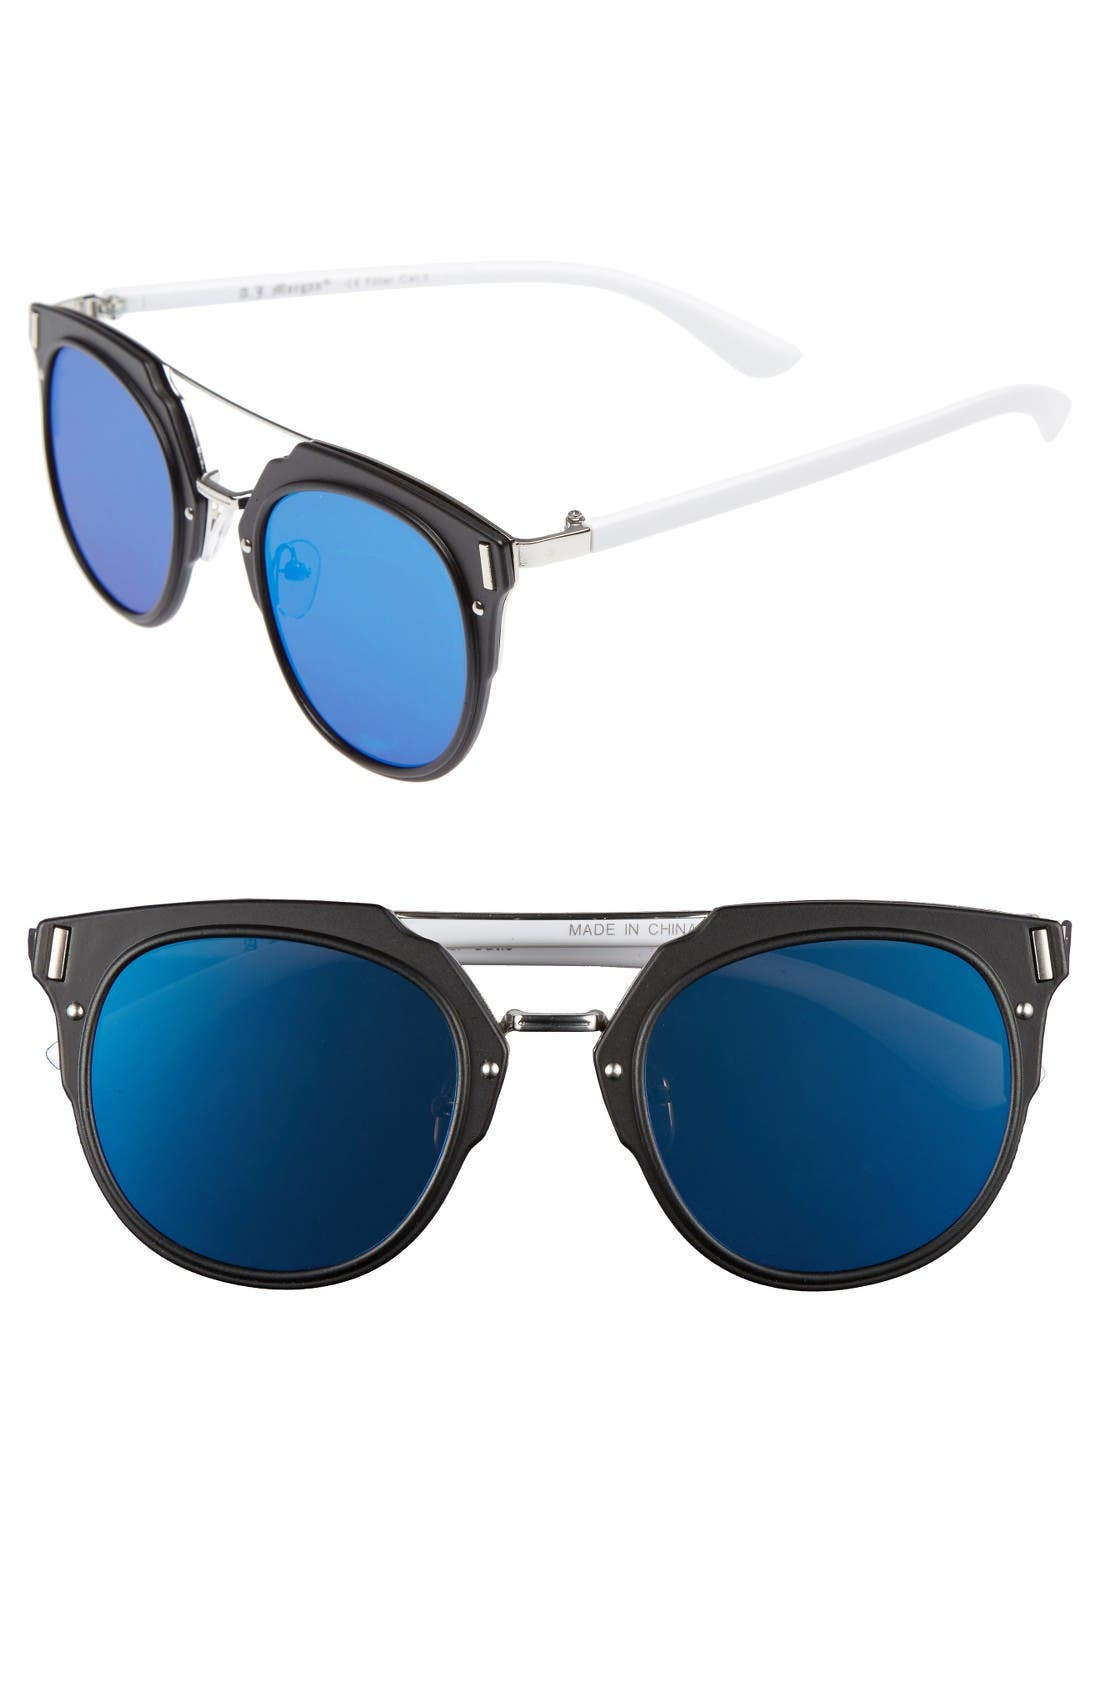 A.J. MORGAN Flats 60mm Sunglasses